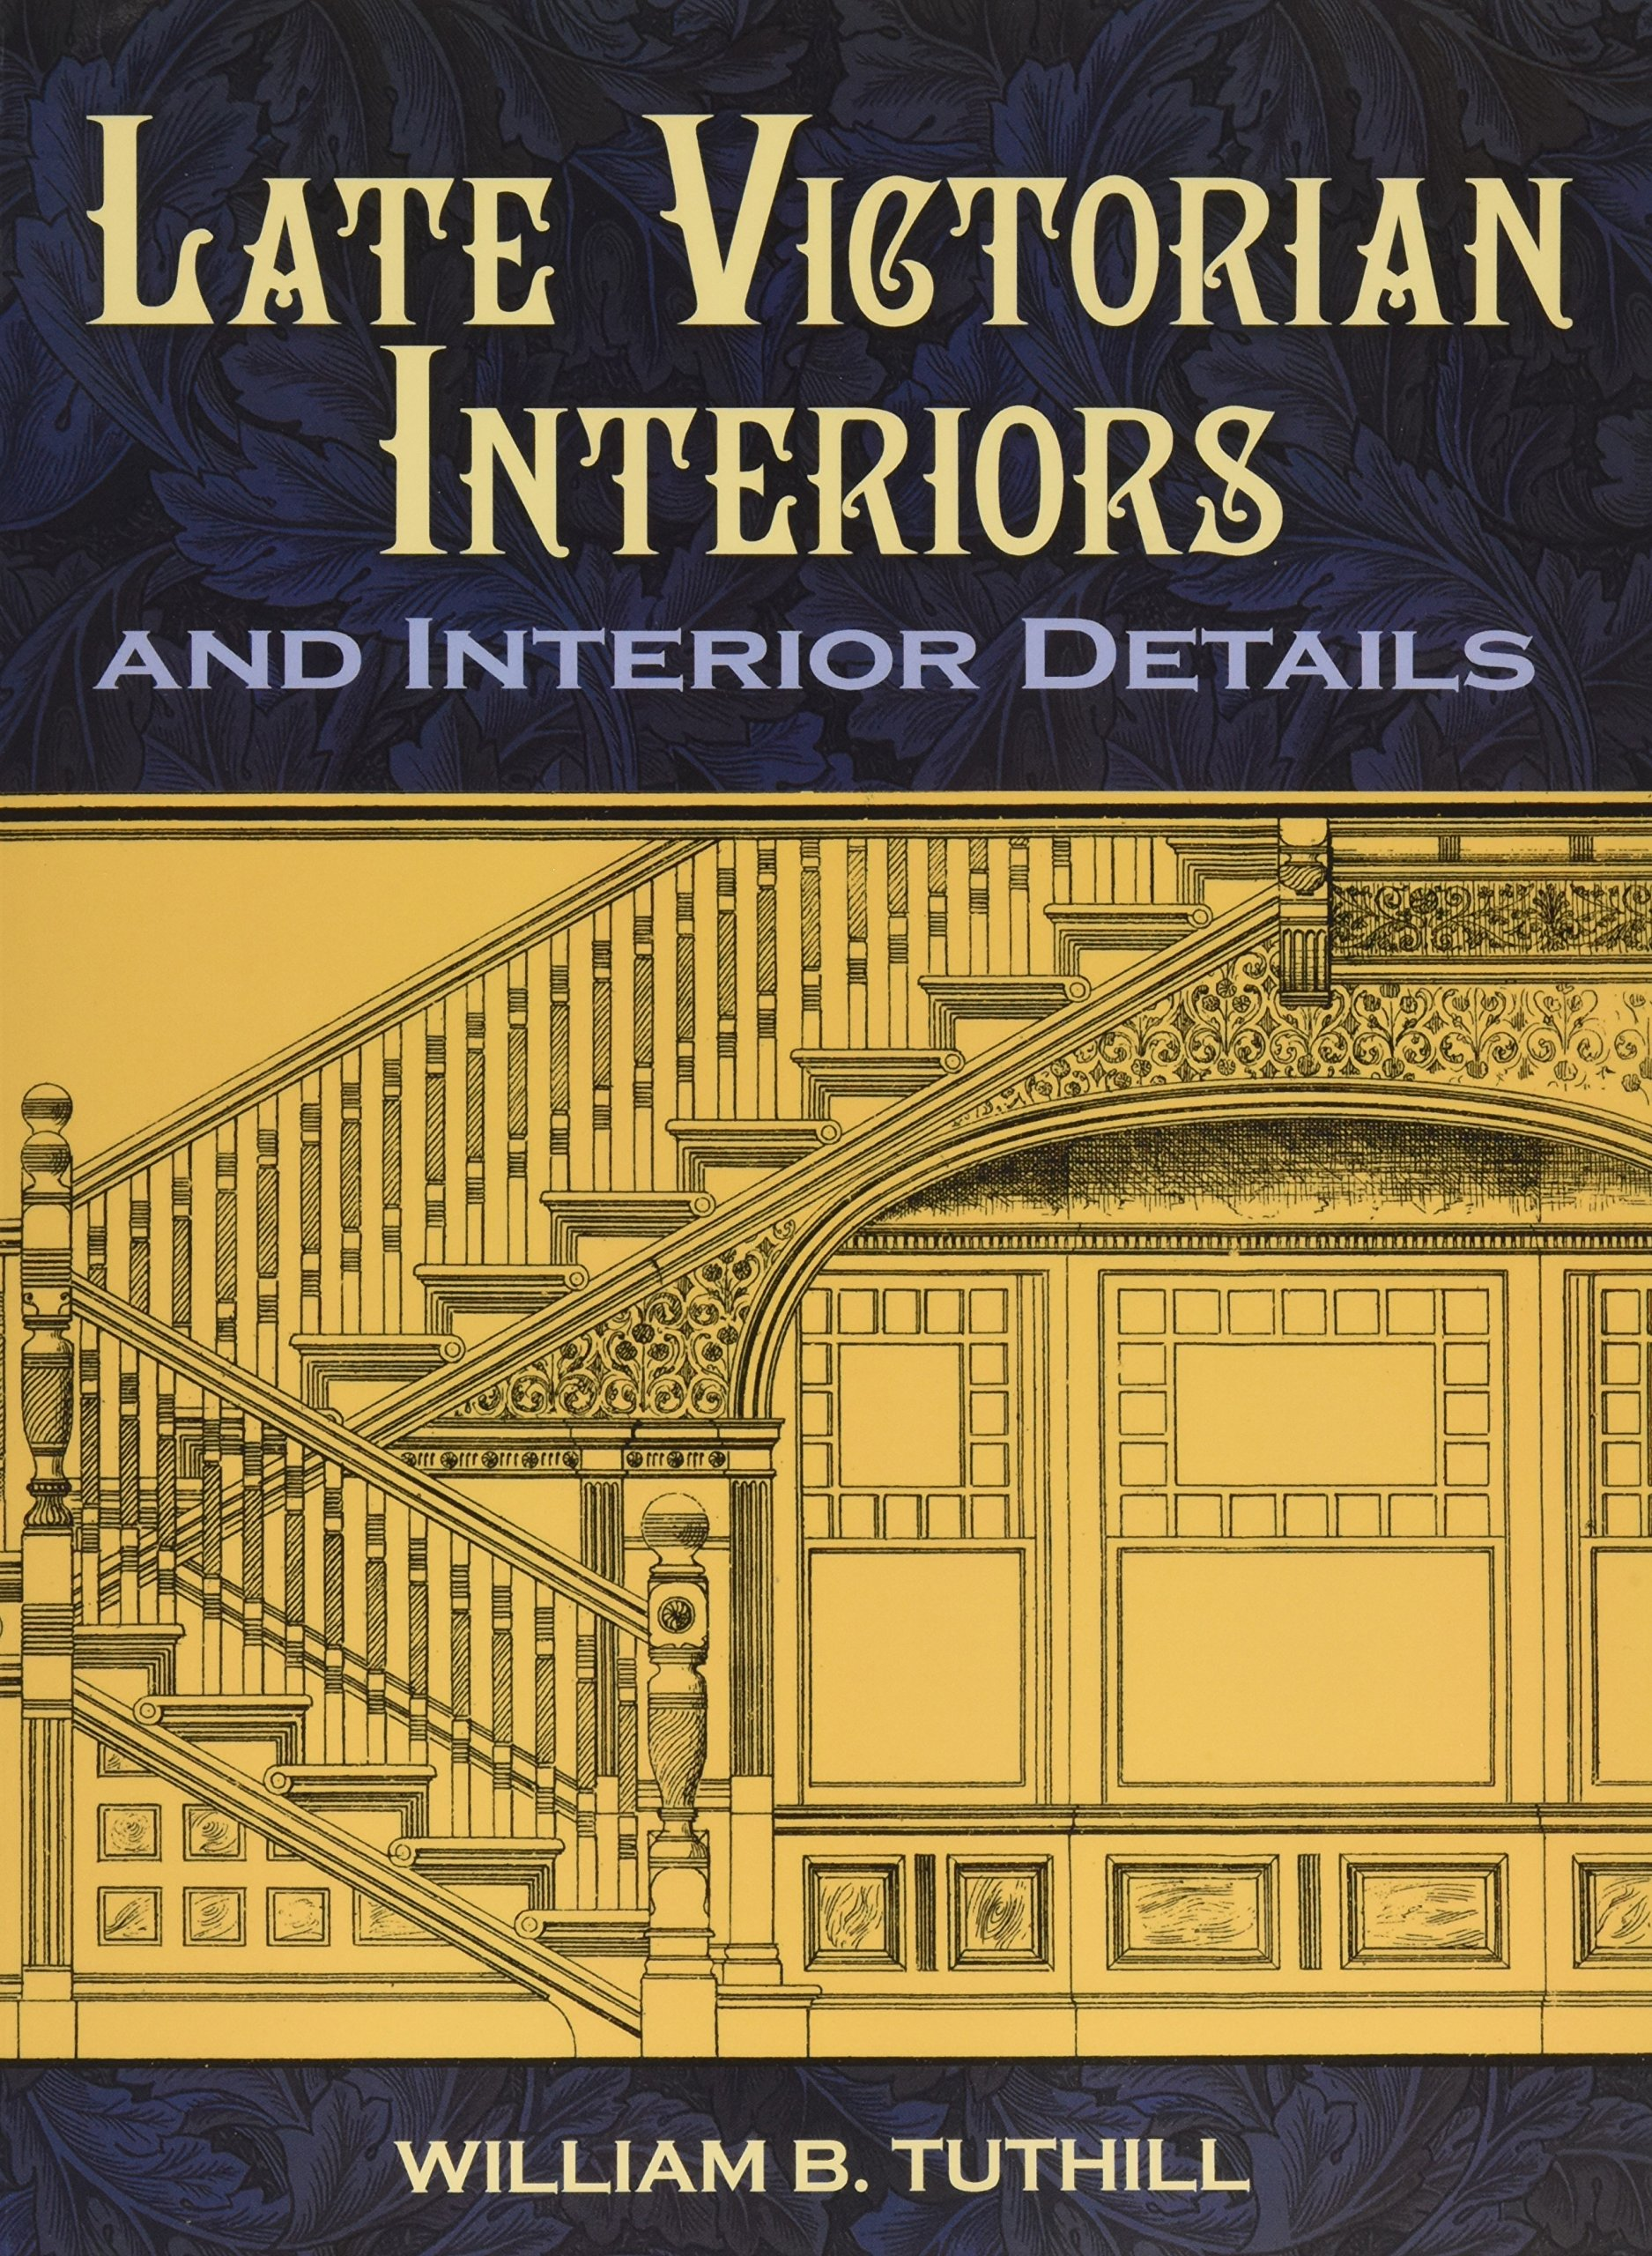 Late Victorian Interiors and Interior Details (Dover Architecture) by Dover Publications (Image #1)